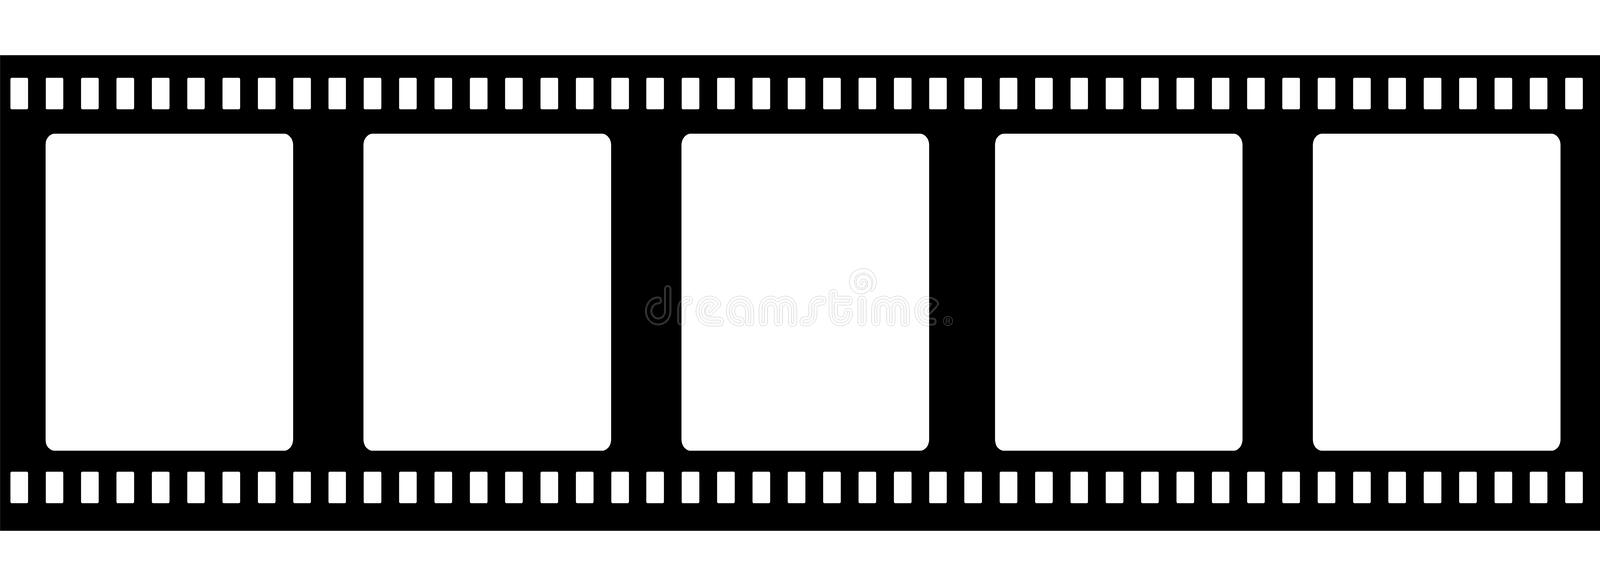 Old fashioned 35mm filmstrip isolated vector illustration